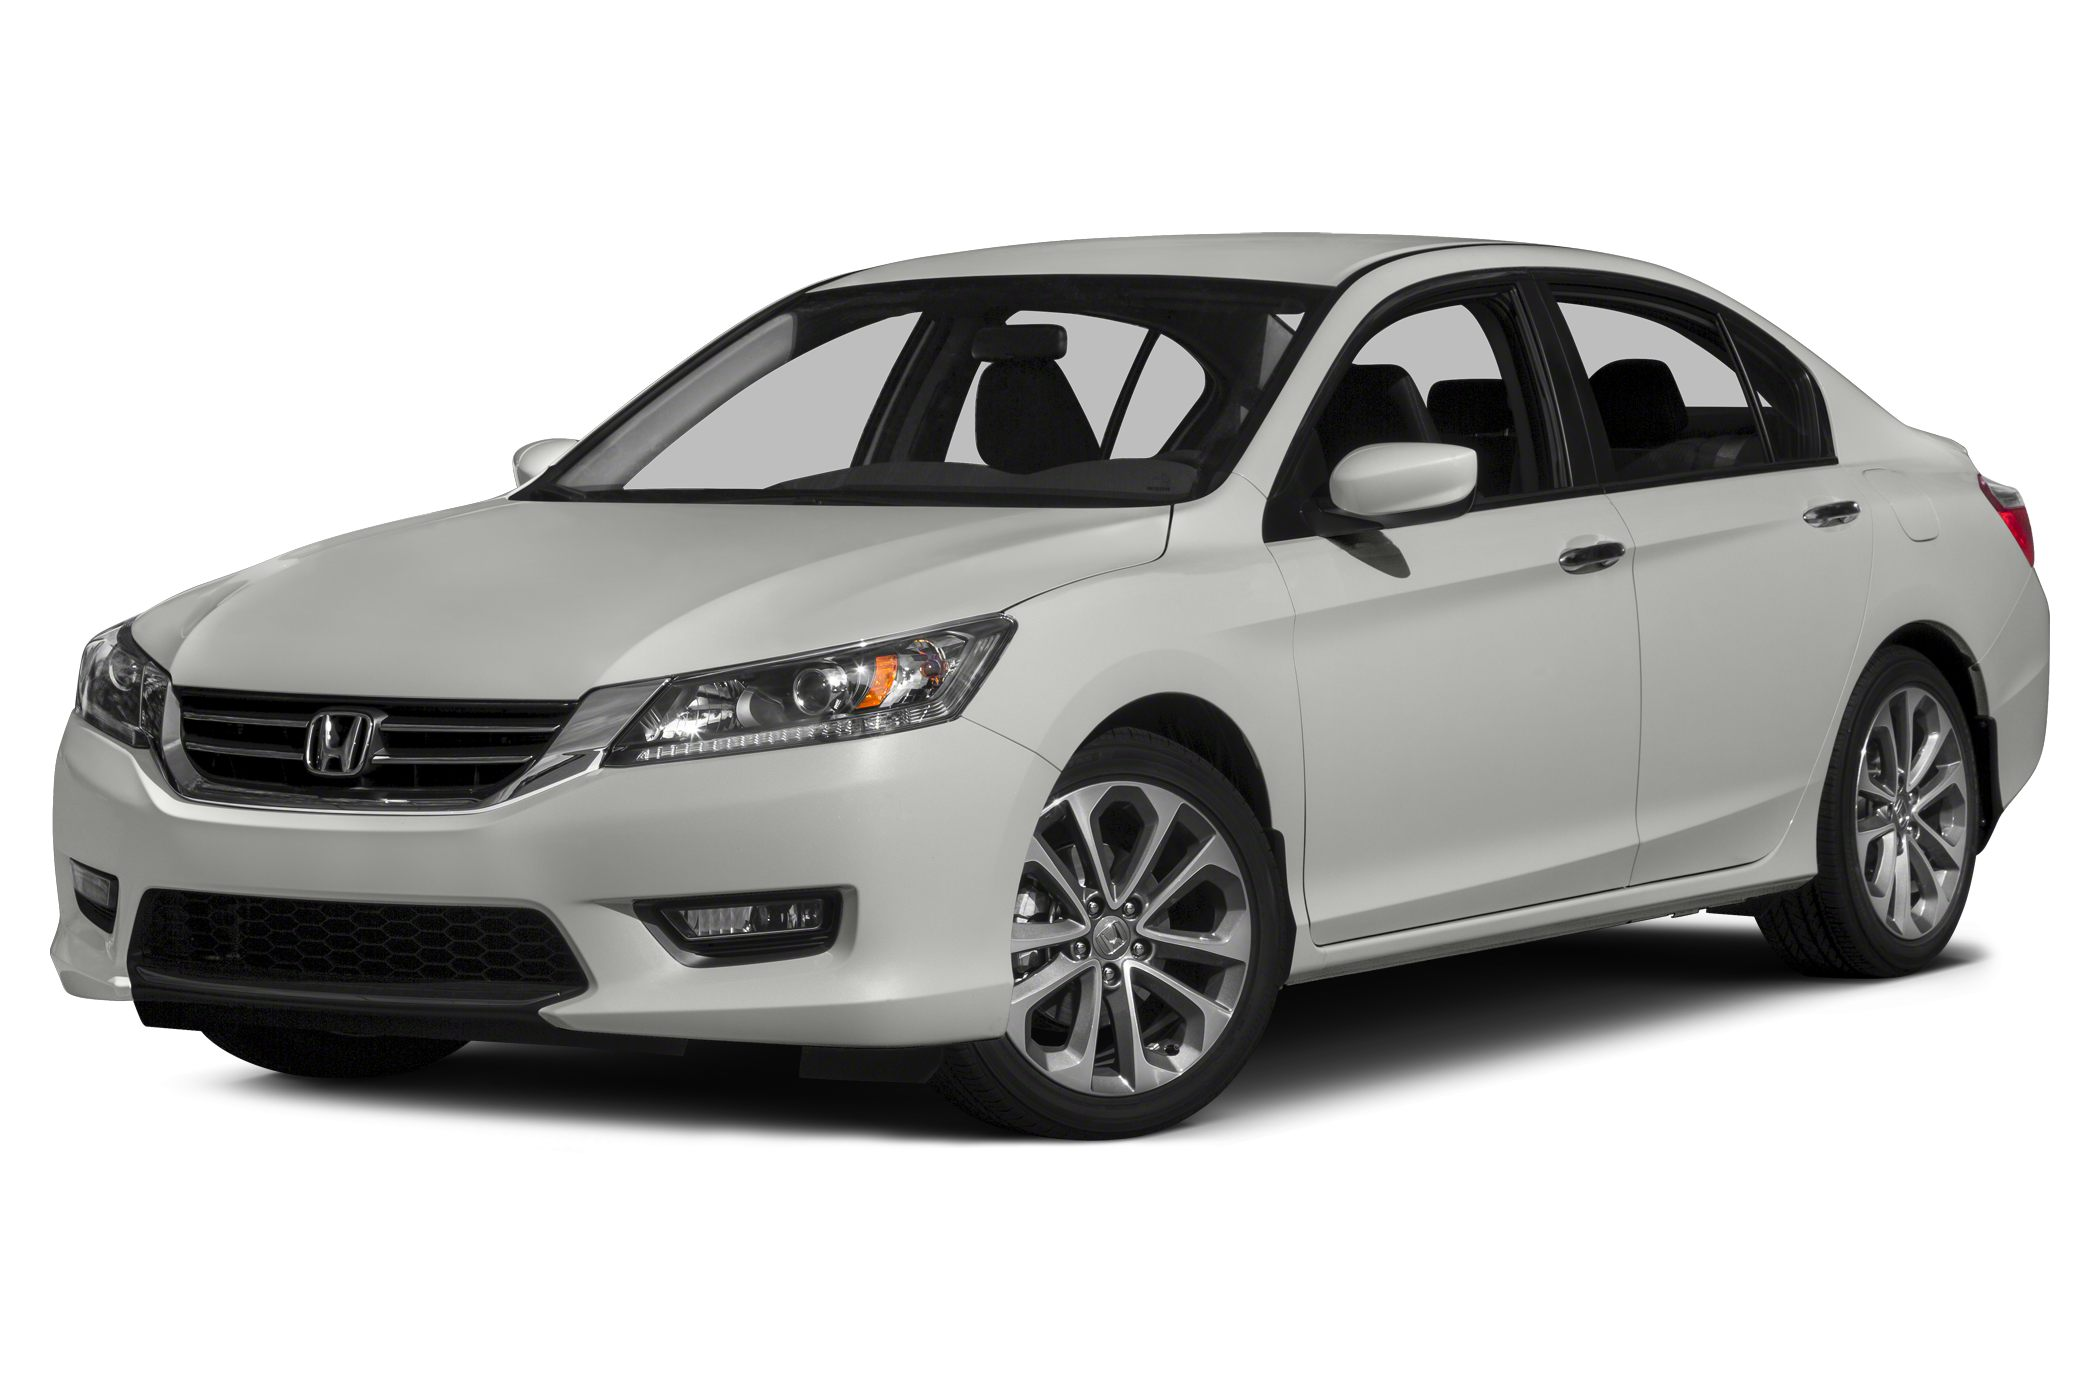 2015 Honda Accord Sport Sedan for sale in Germantown for $25,733 with 2 miles